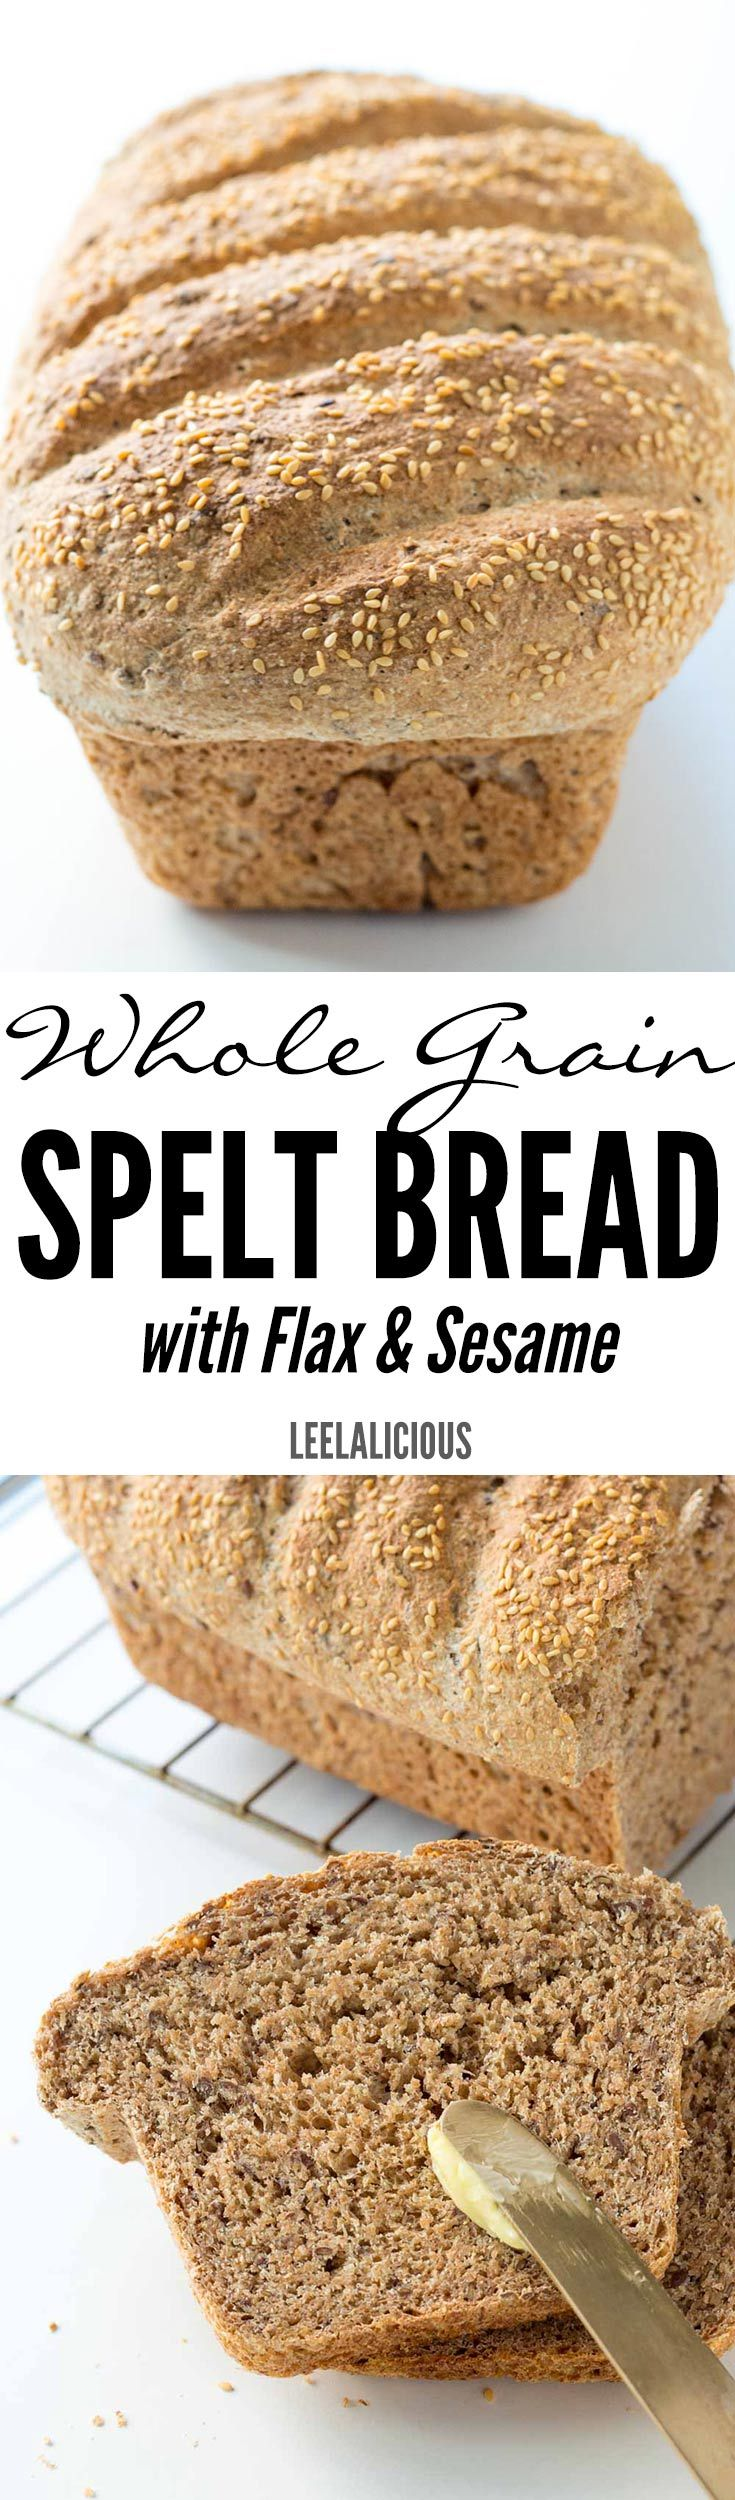 This nutritious Whole Grain Spelt Bread Recipe with flax and sesame seeds is super easy to make. It is also much better and more economical than store bought bread.(Baking Bread Recipes)